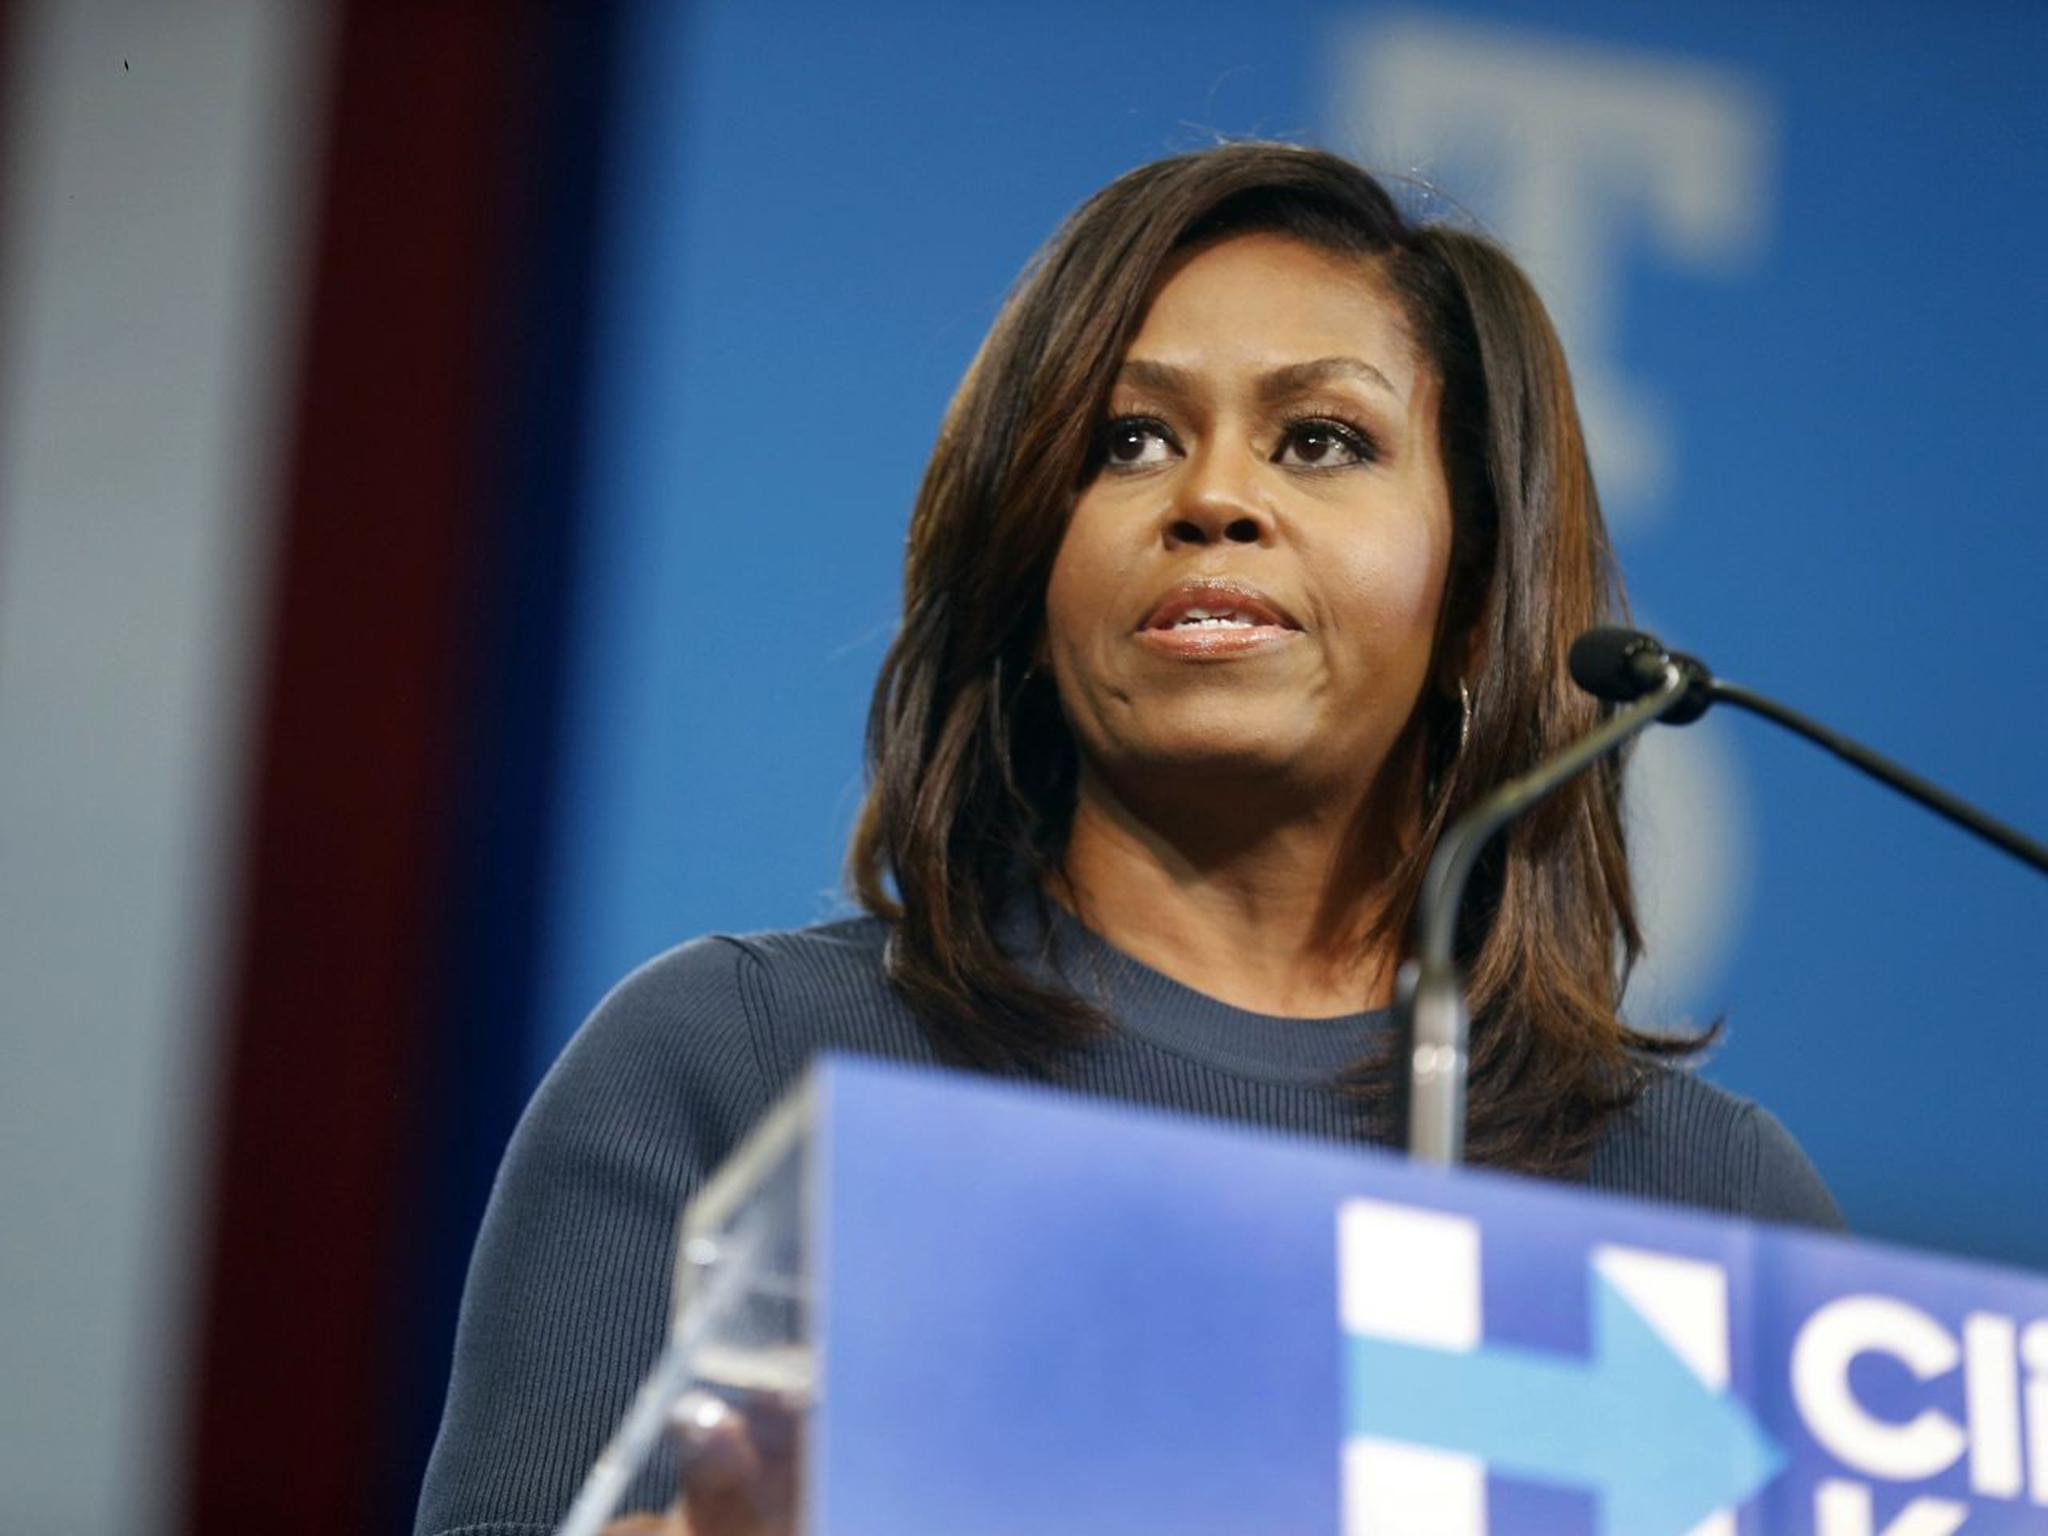 2048x1536 - Michelle Obama Wallpapers 14